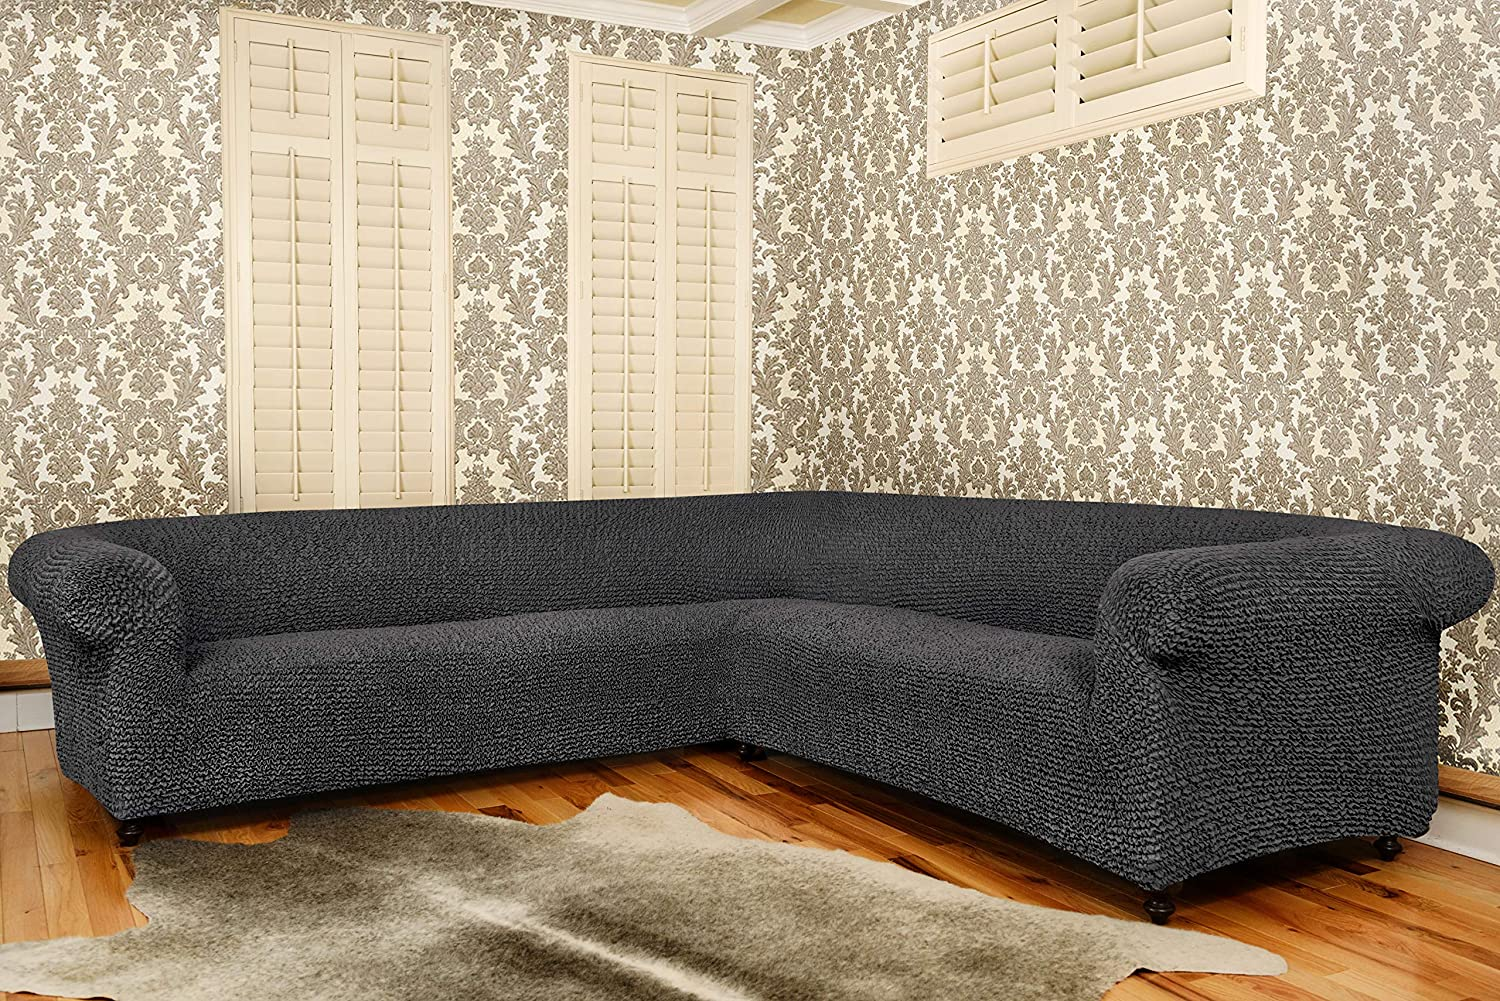 Sectional Sofa Cover - Corner Couch Cover - Corner Slipcover - Soft Polyester Fabric Slipcovers - 1-piece Form Fit Stretch Furniture Slipcover - ...